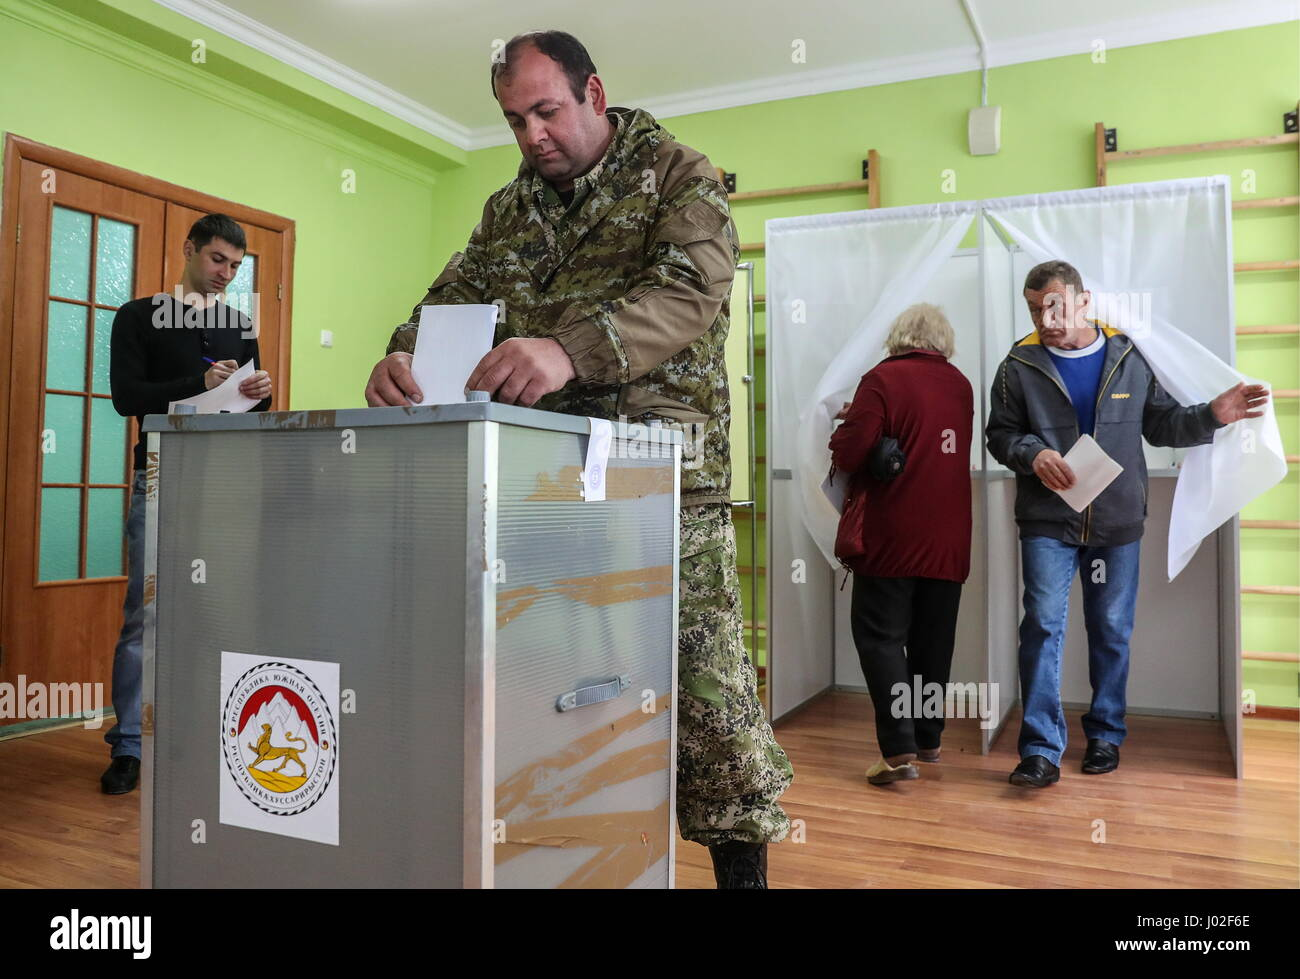 Tskhinval, South Ossetia. 9th Apr, 2017. Citizens vote at the 2017 South Ossetian presidential election at a polling - Stock Image